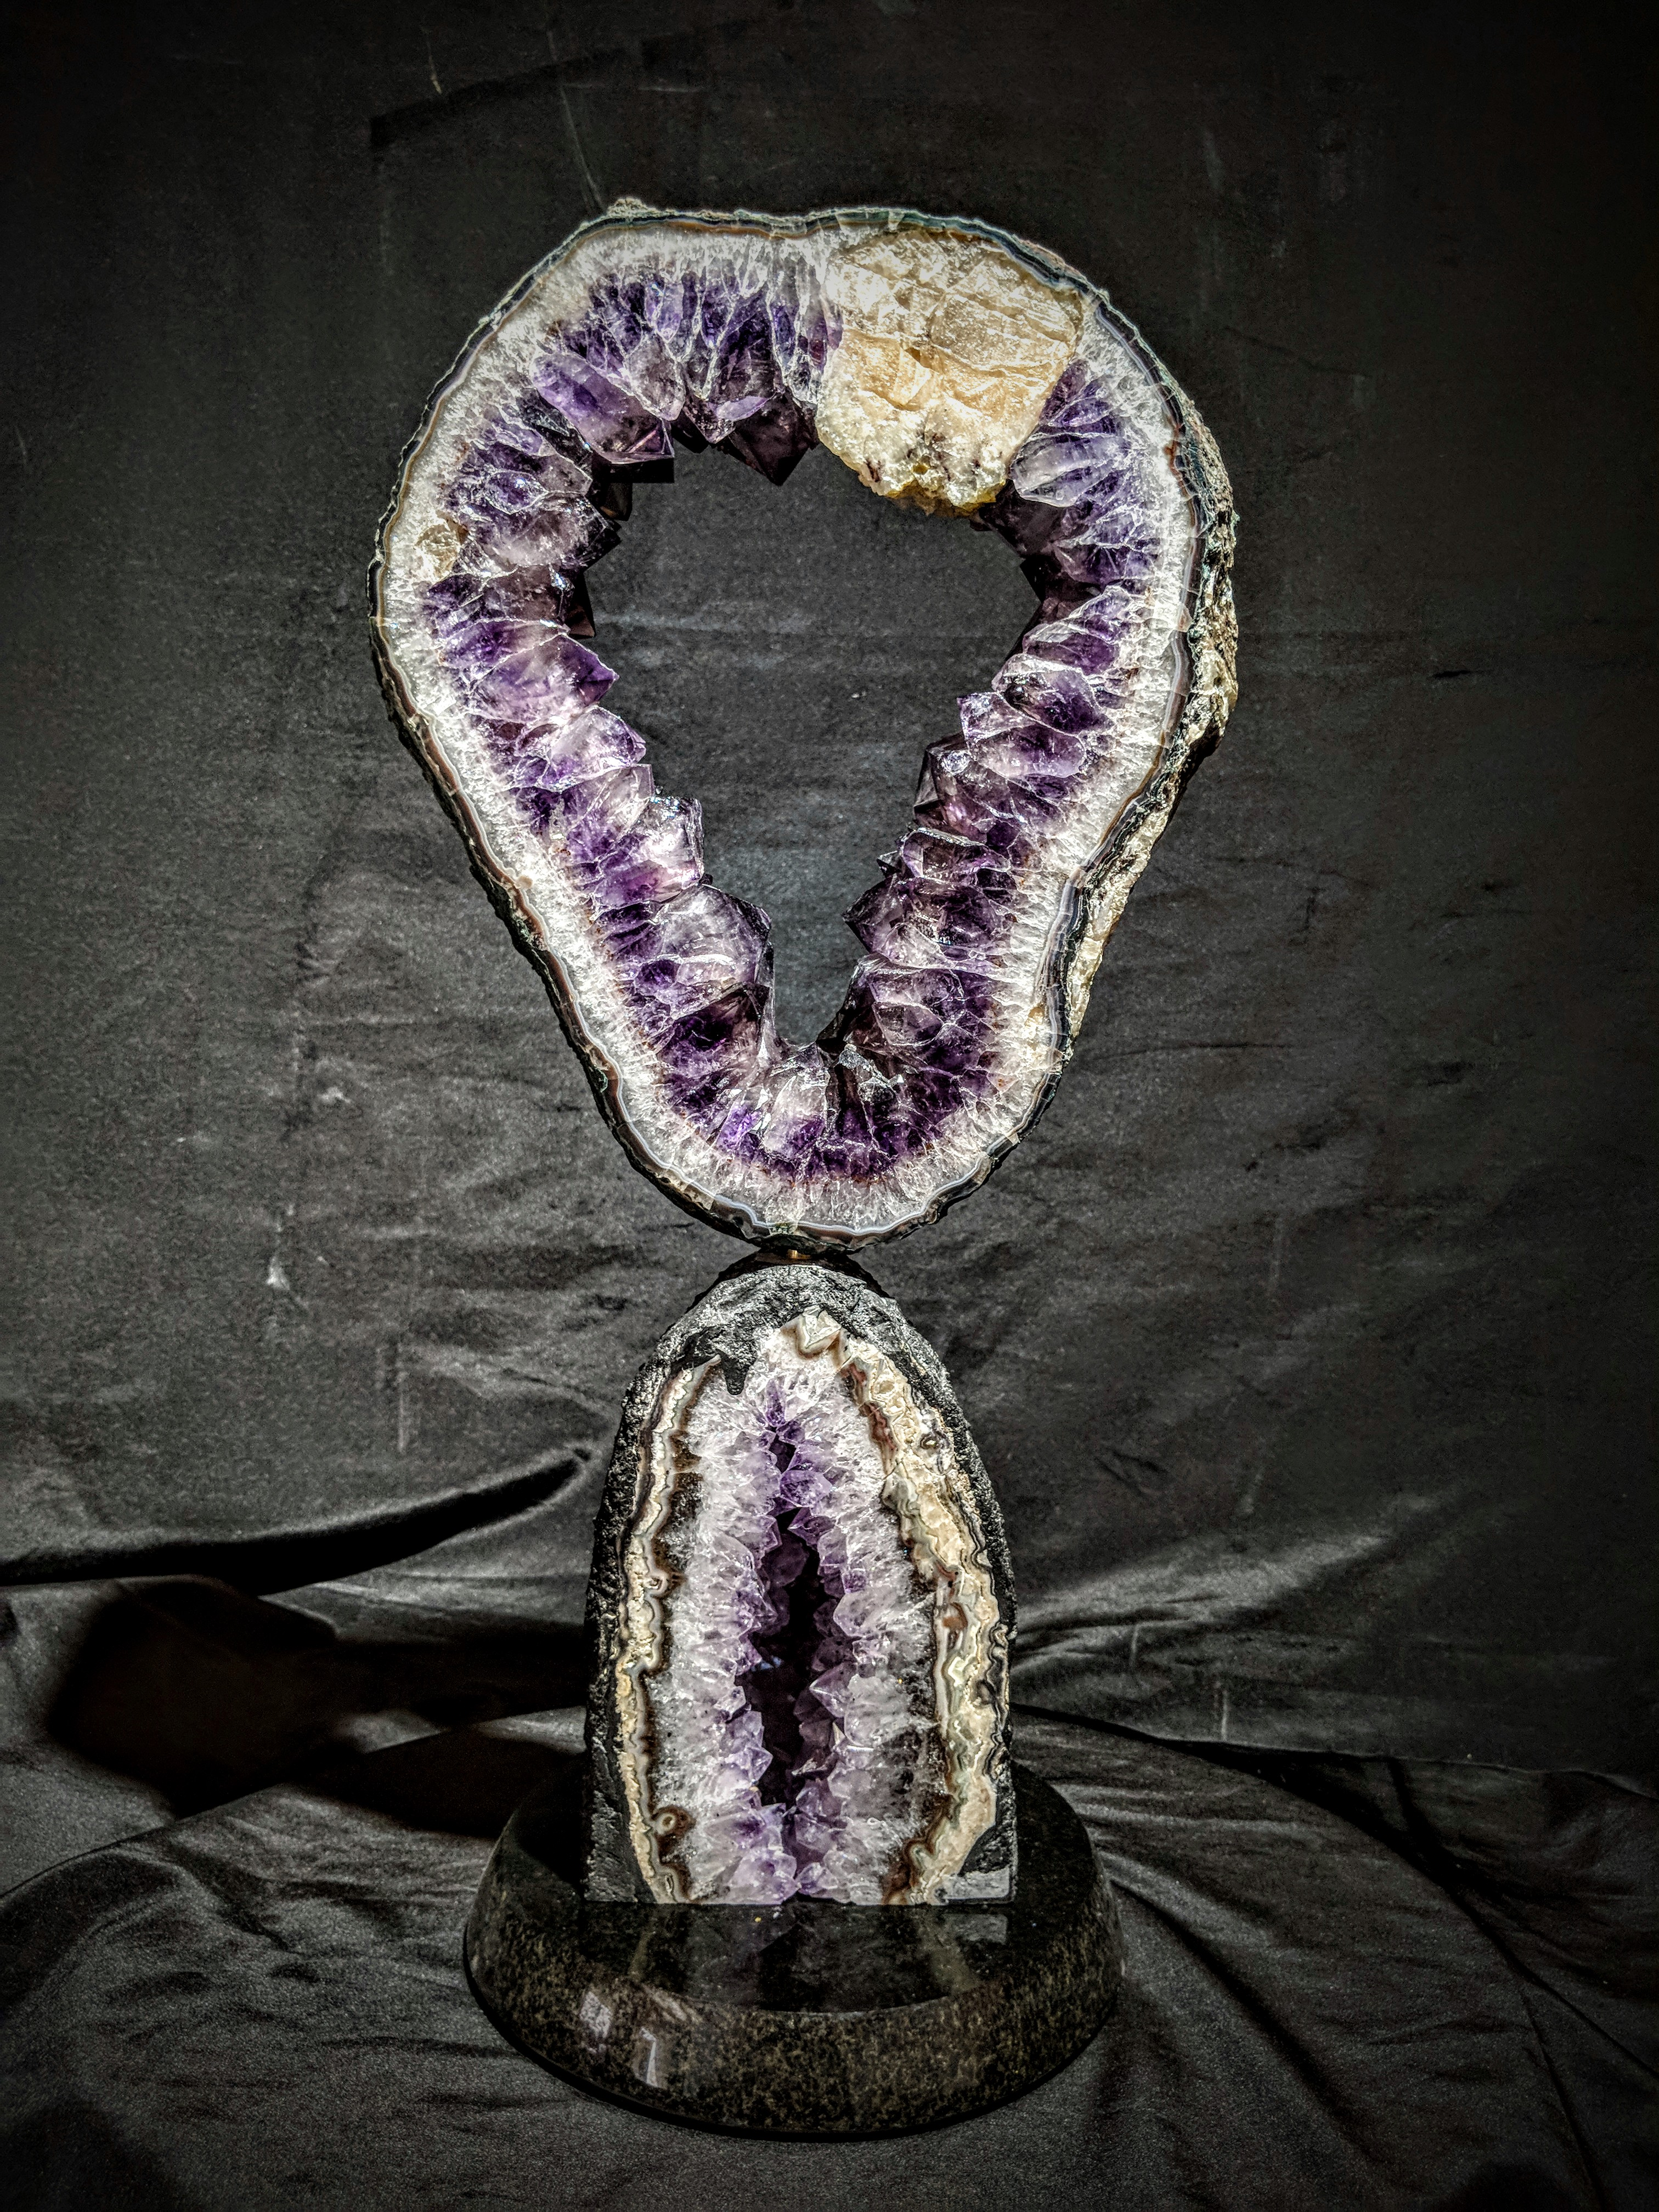 Brazilian Amethyst Sculpture